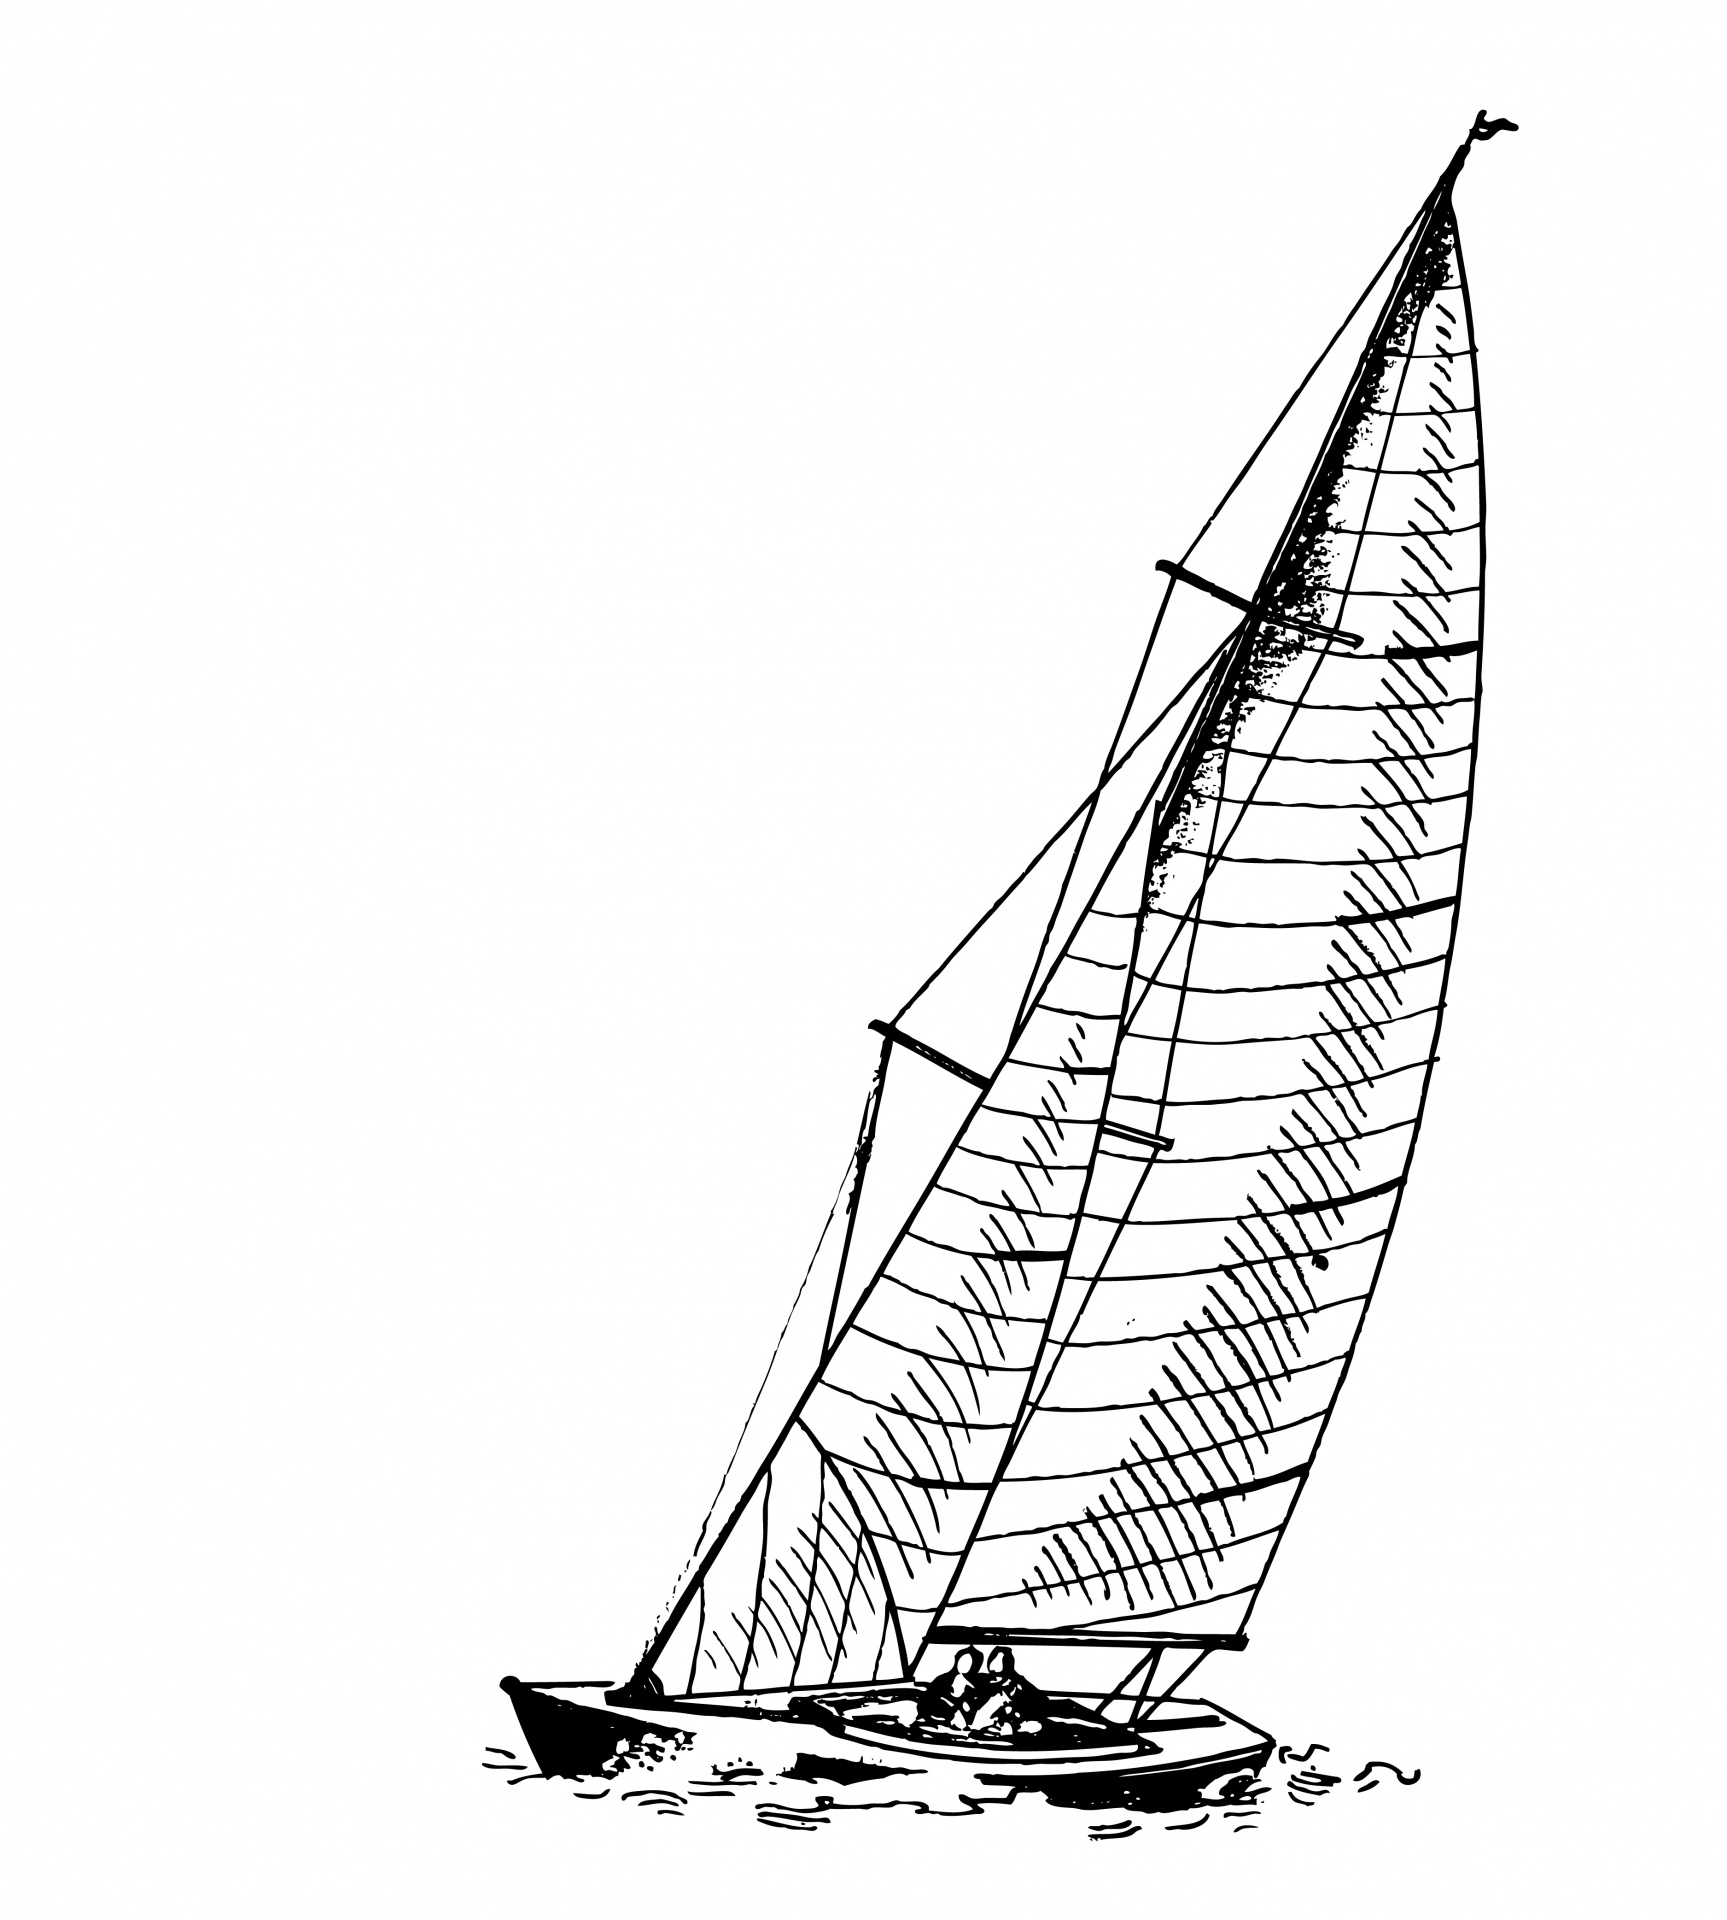 Boats clipart illustration. Sail boat free stock